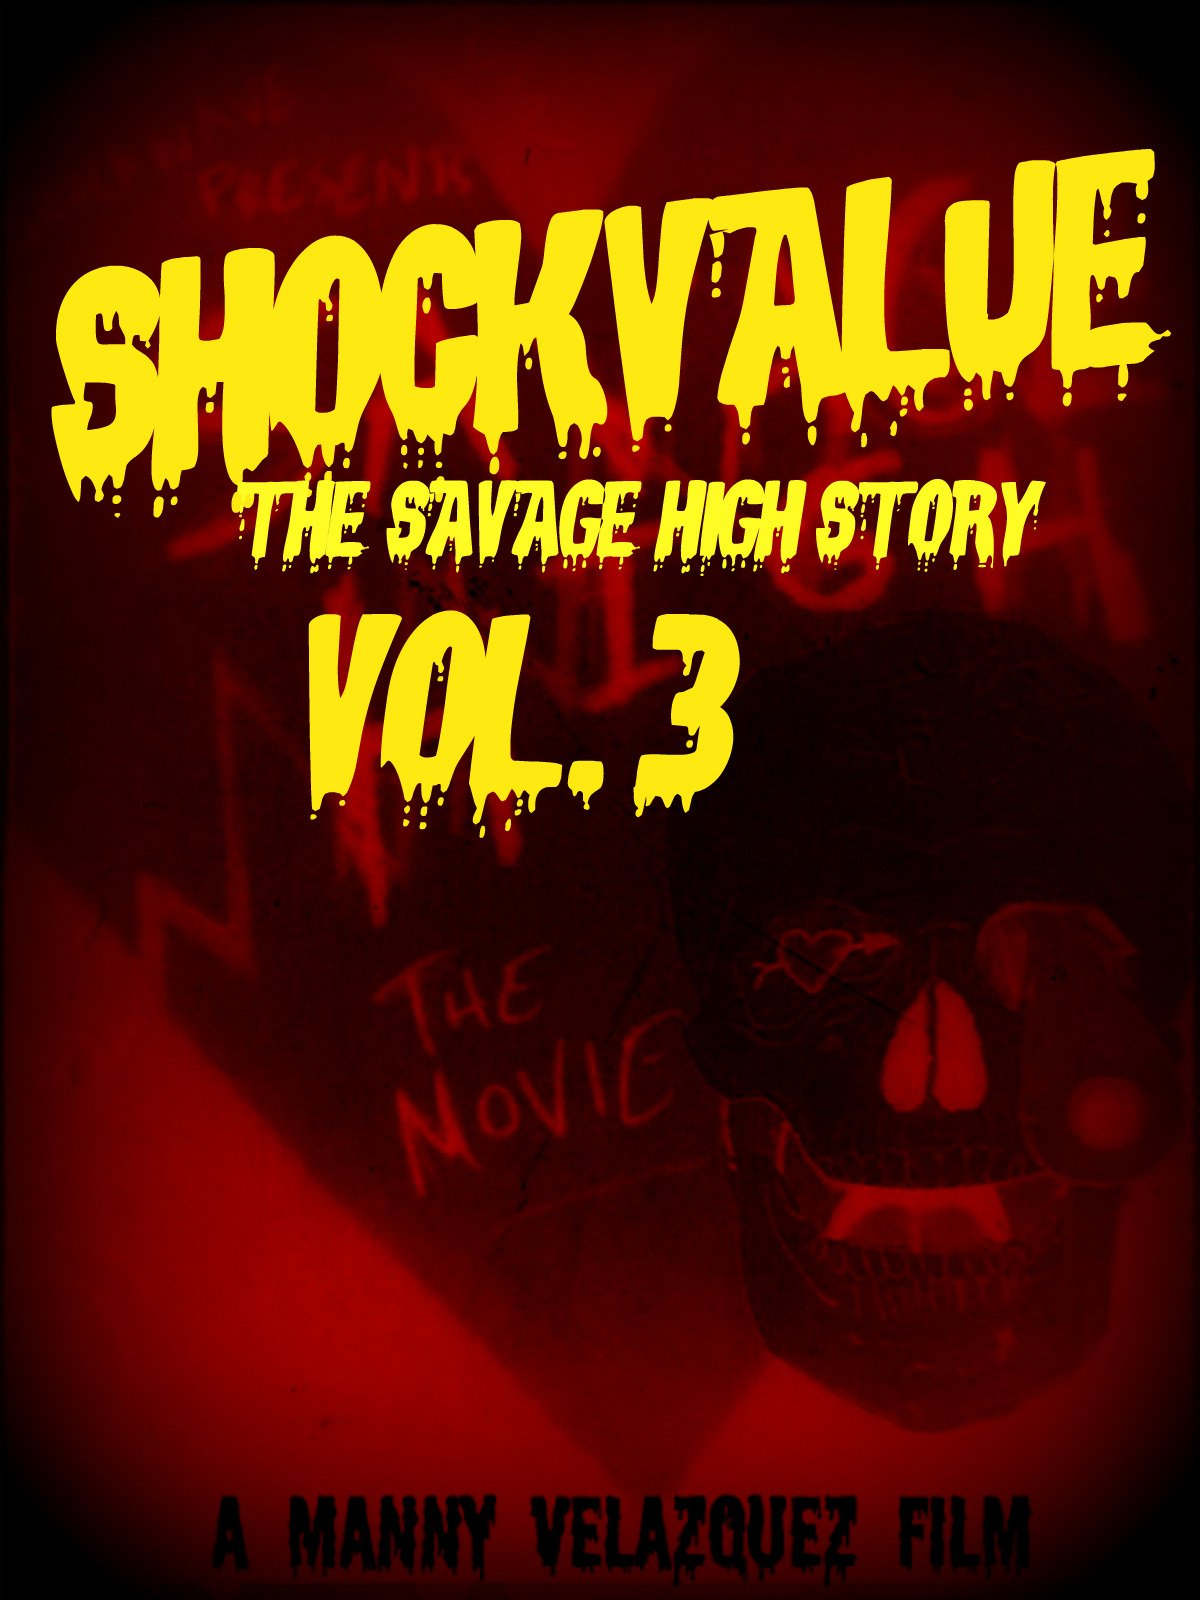 Shockvalue: The Savage High Story Vol. 3